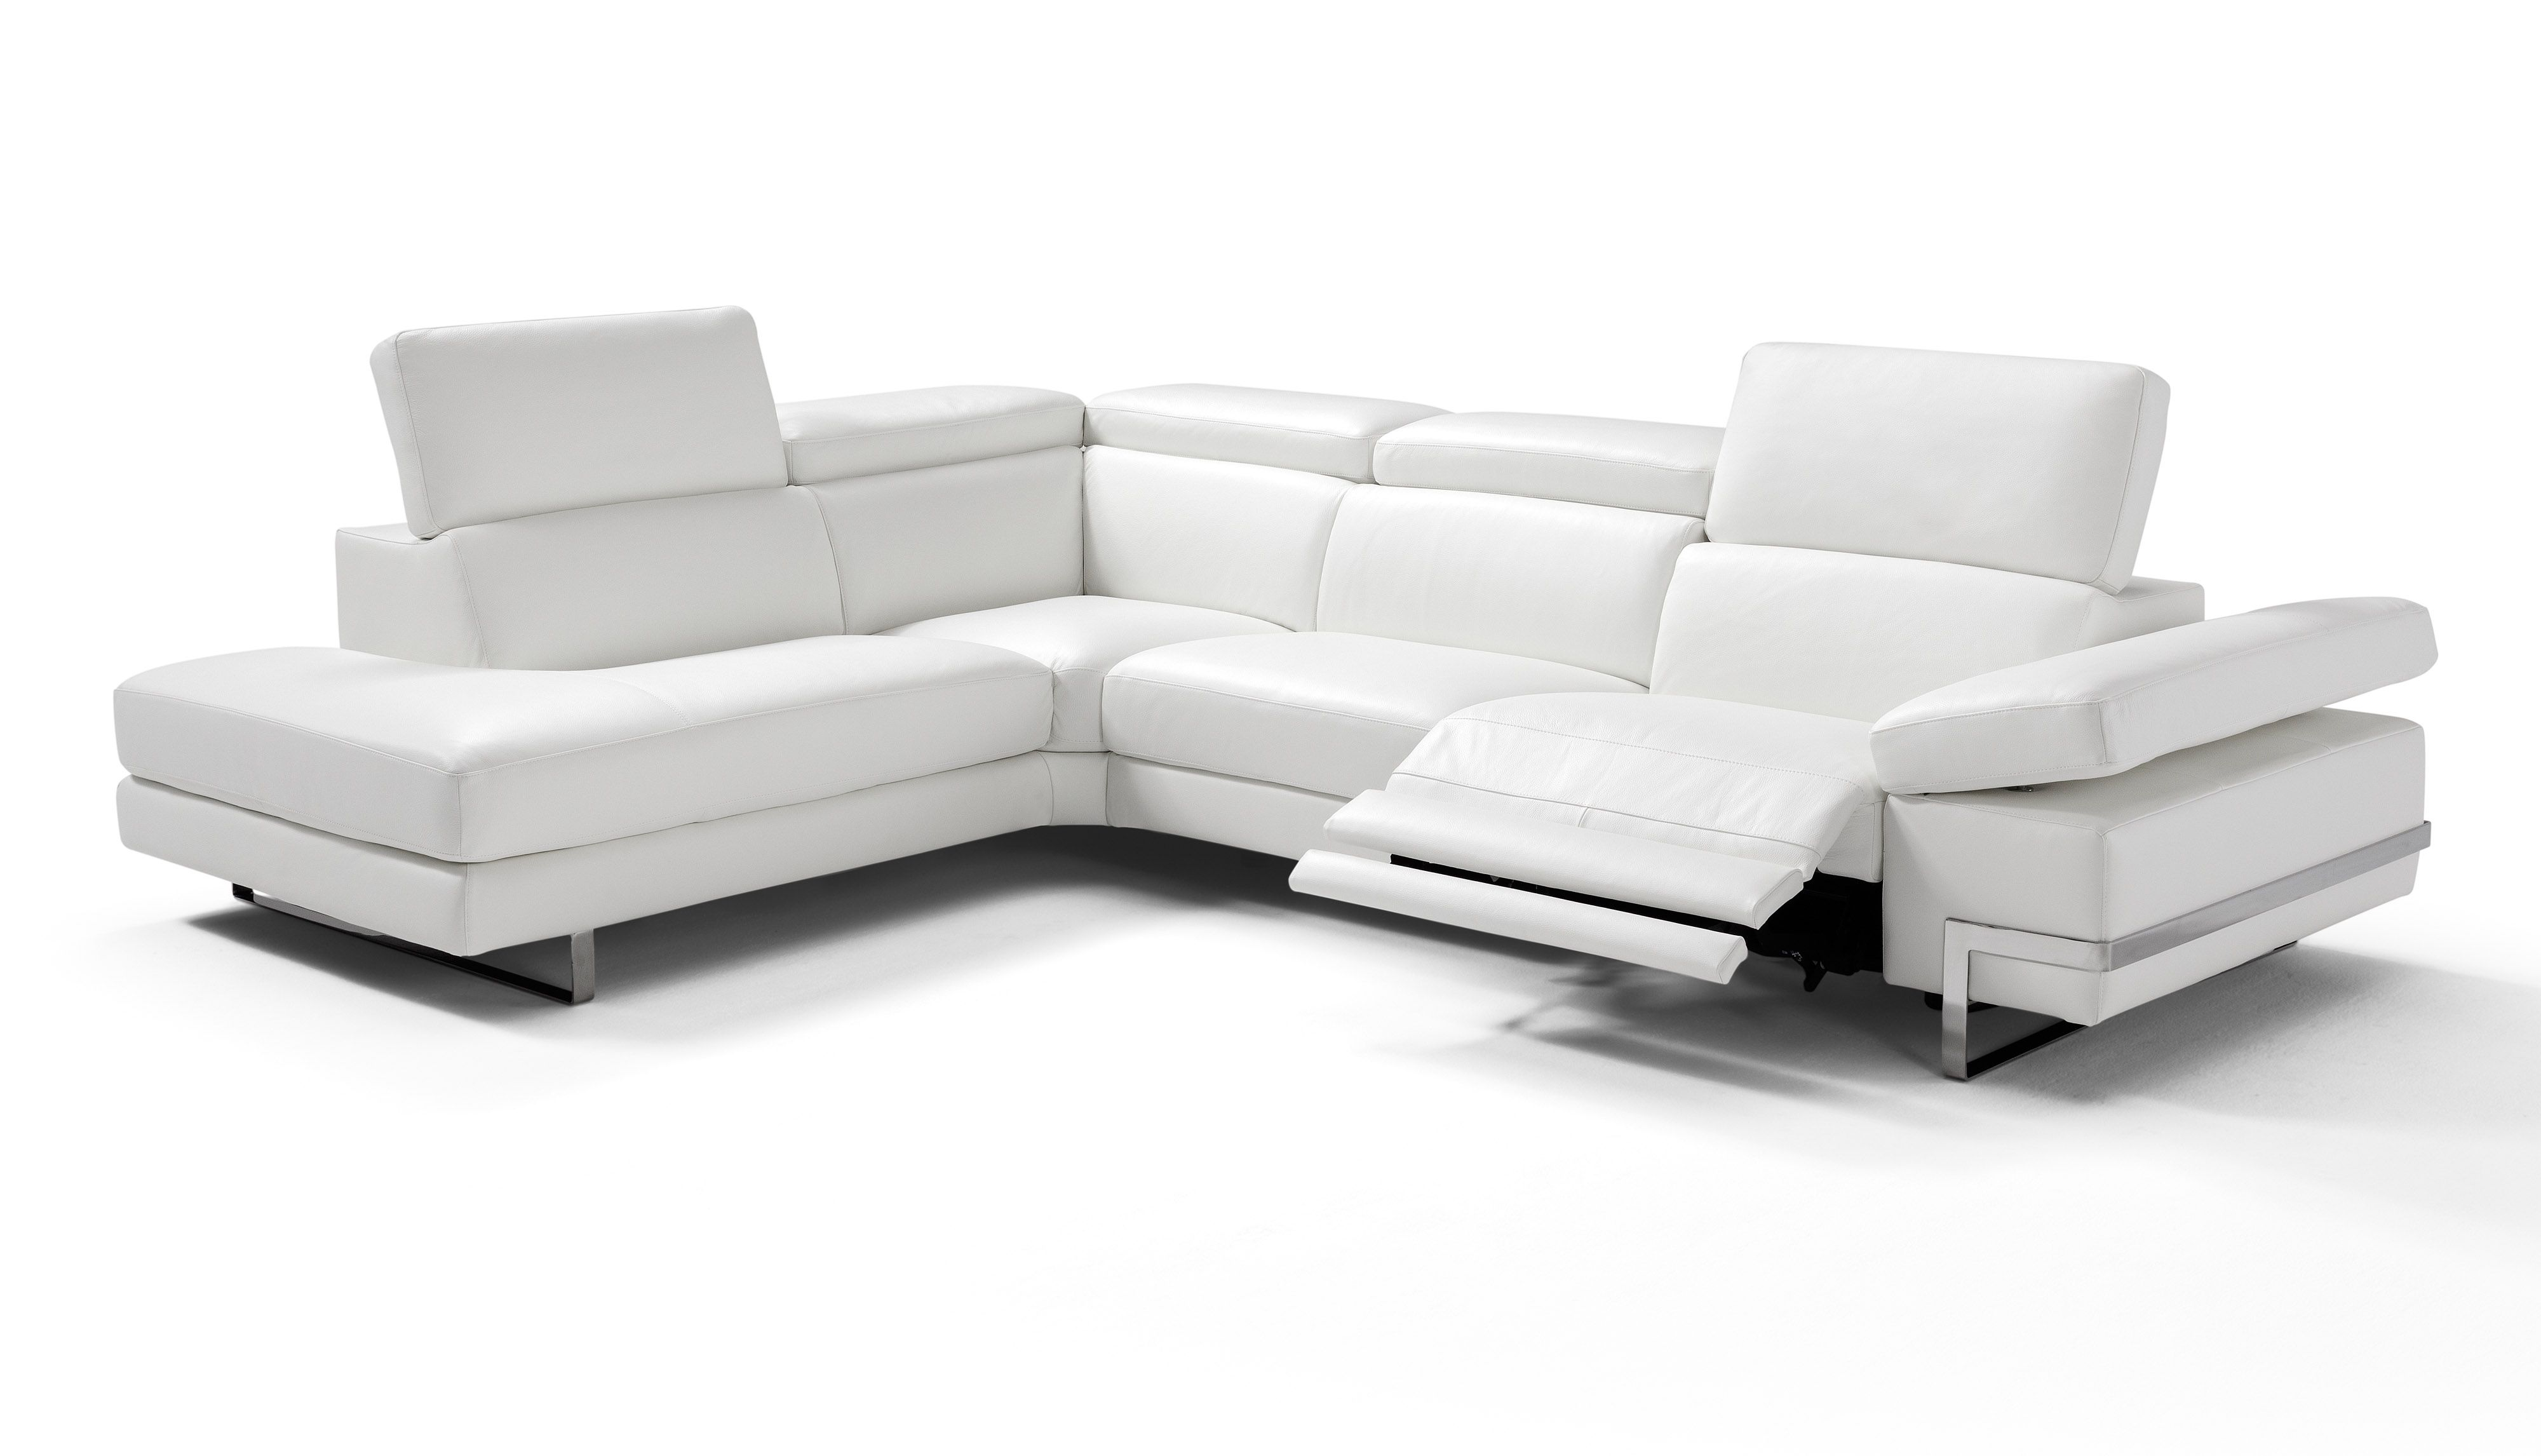 High Class Sectional Upholstered In Real Leather Modern Sofa Sectional Best Leather Sofa Leather Sectional Sofas